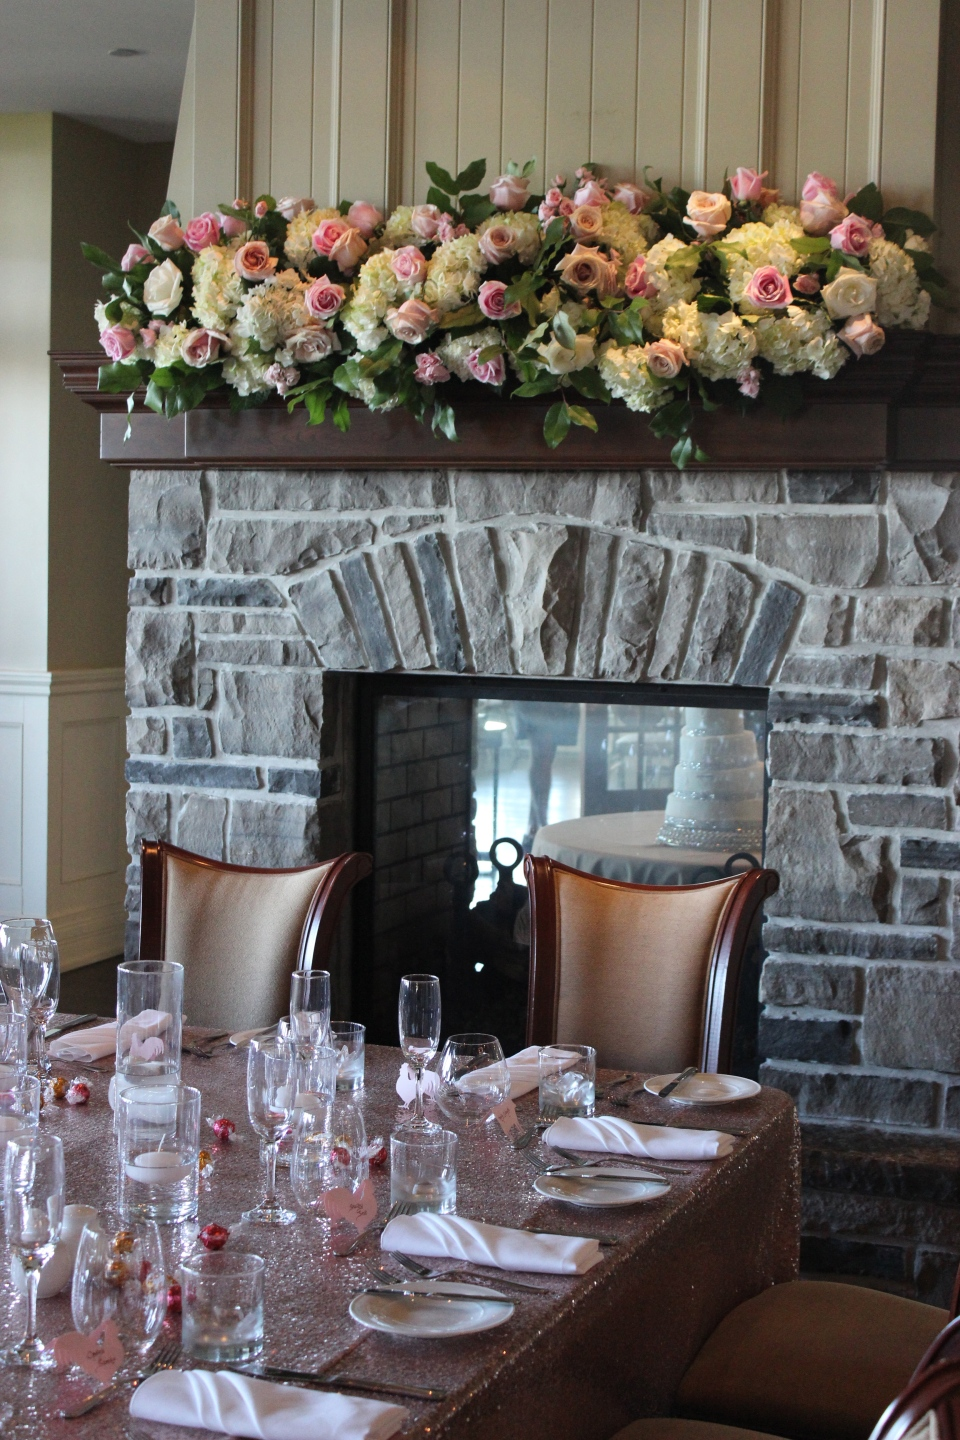 Floral mantle arrangement of hydrangea and roses